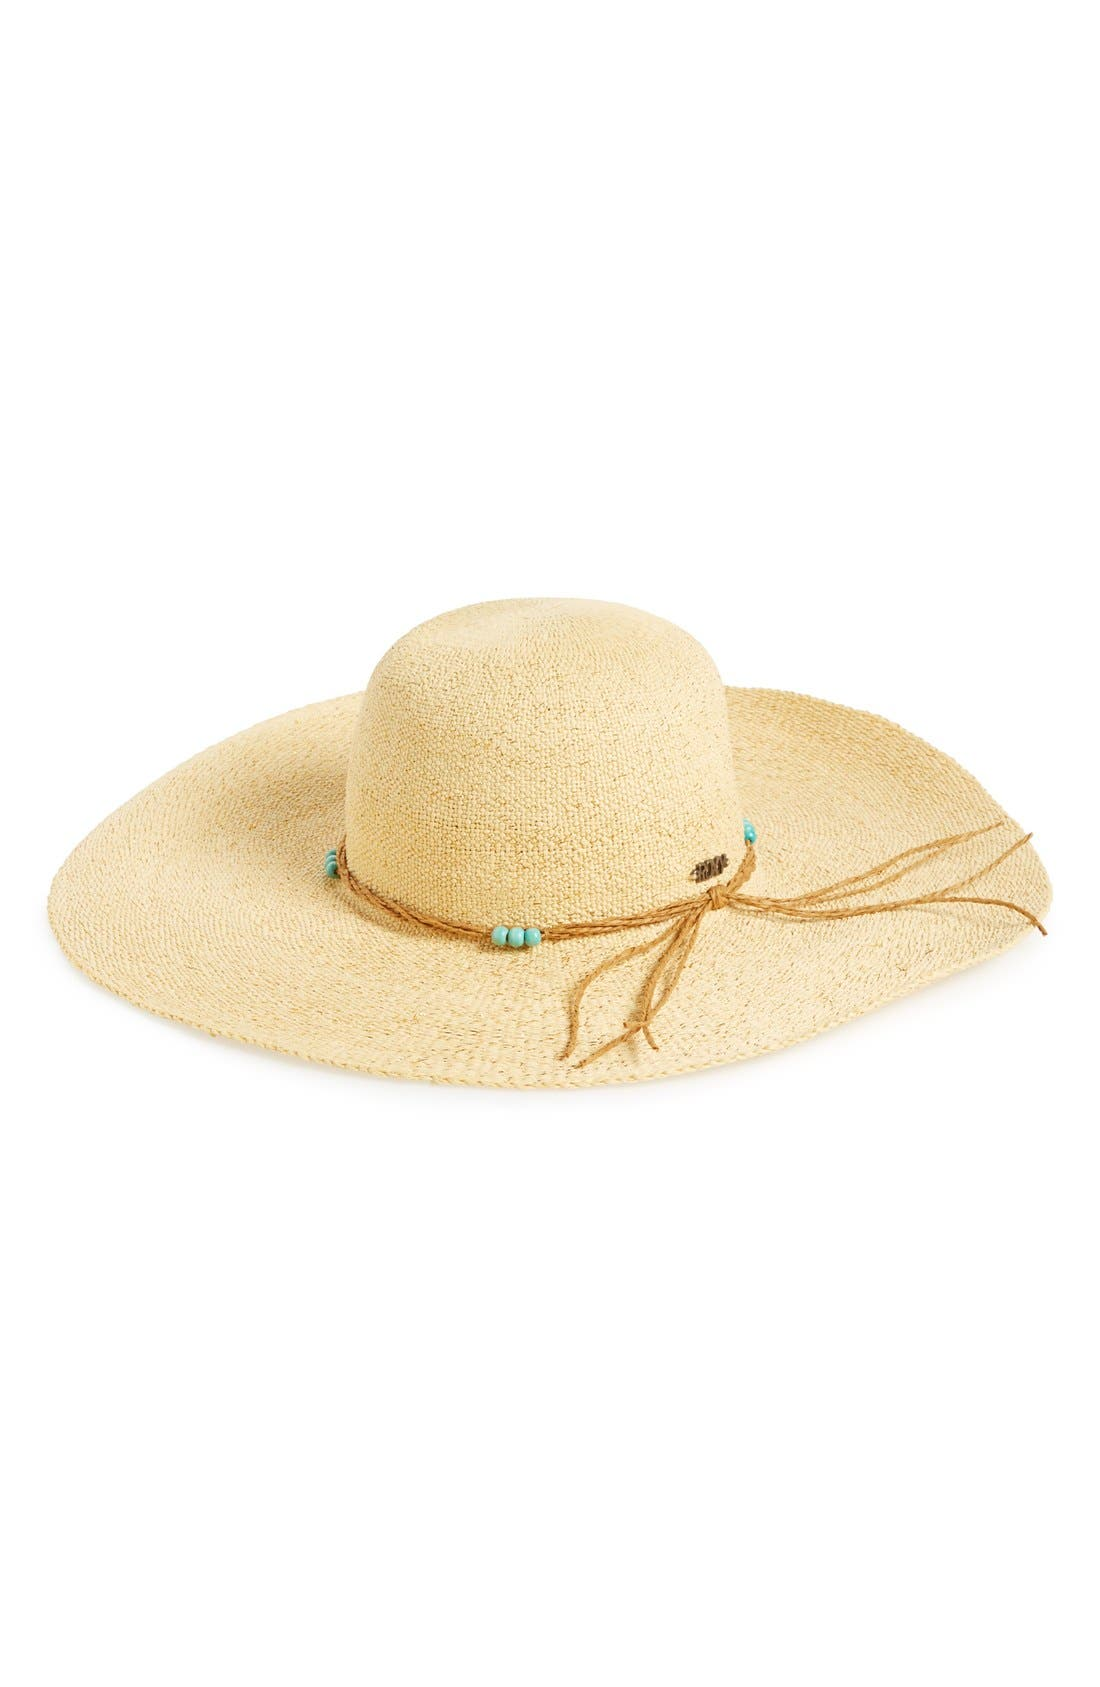 Main Image - Roxy 'By the Sea' Floppy Hat